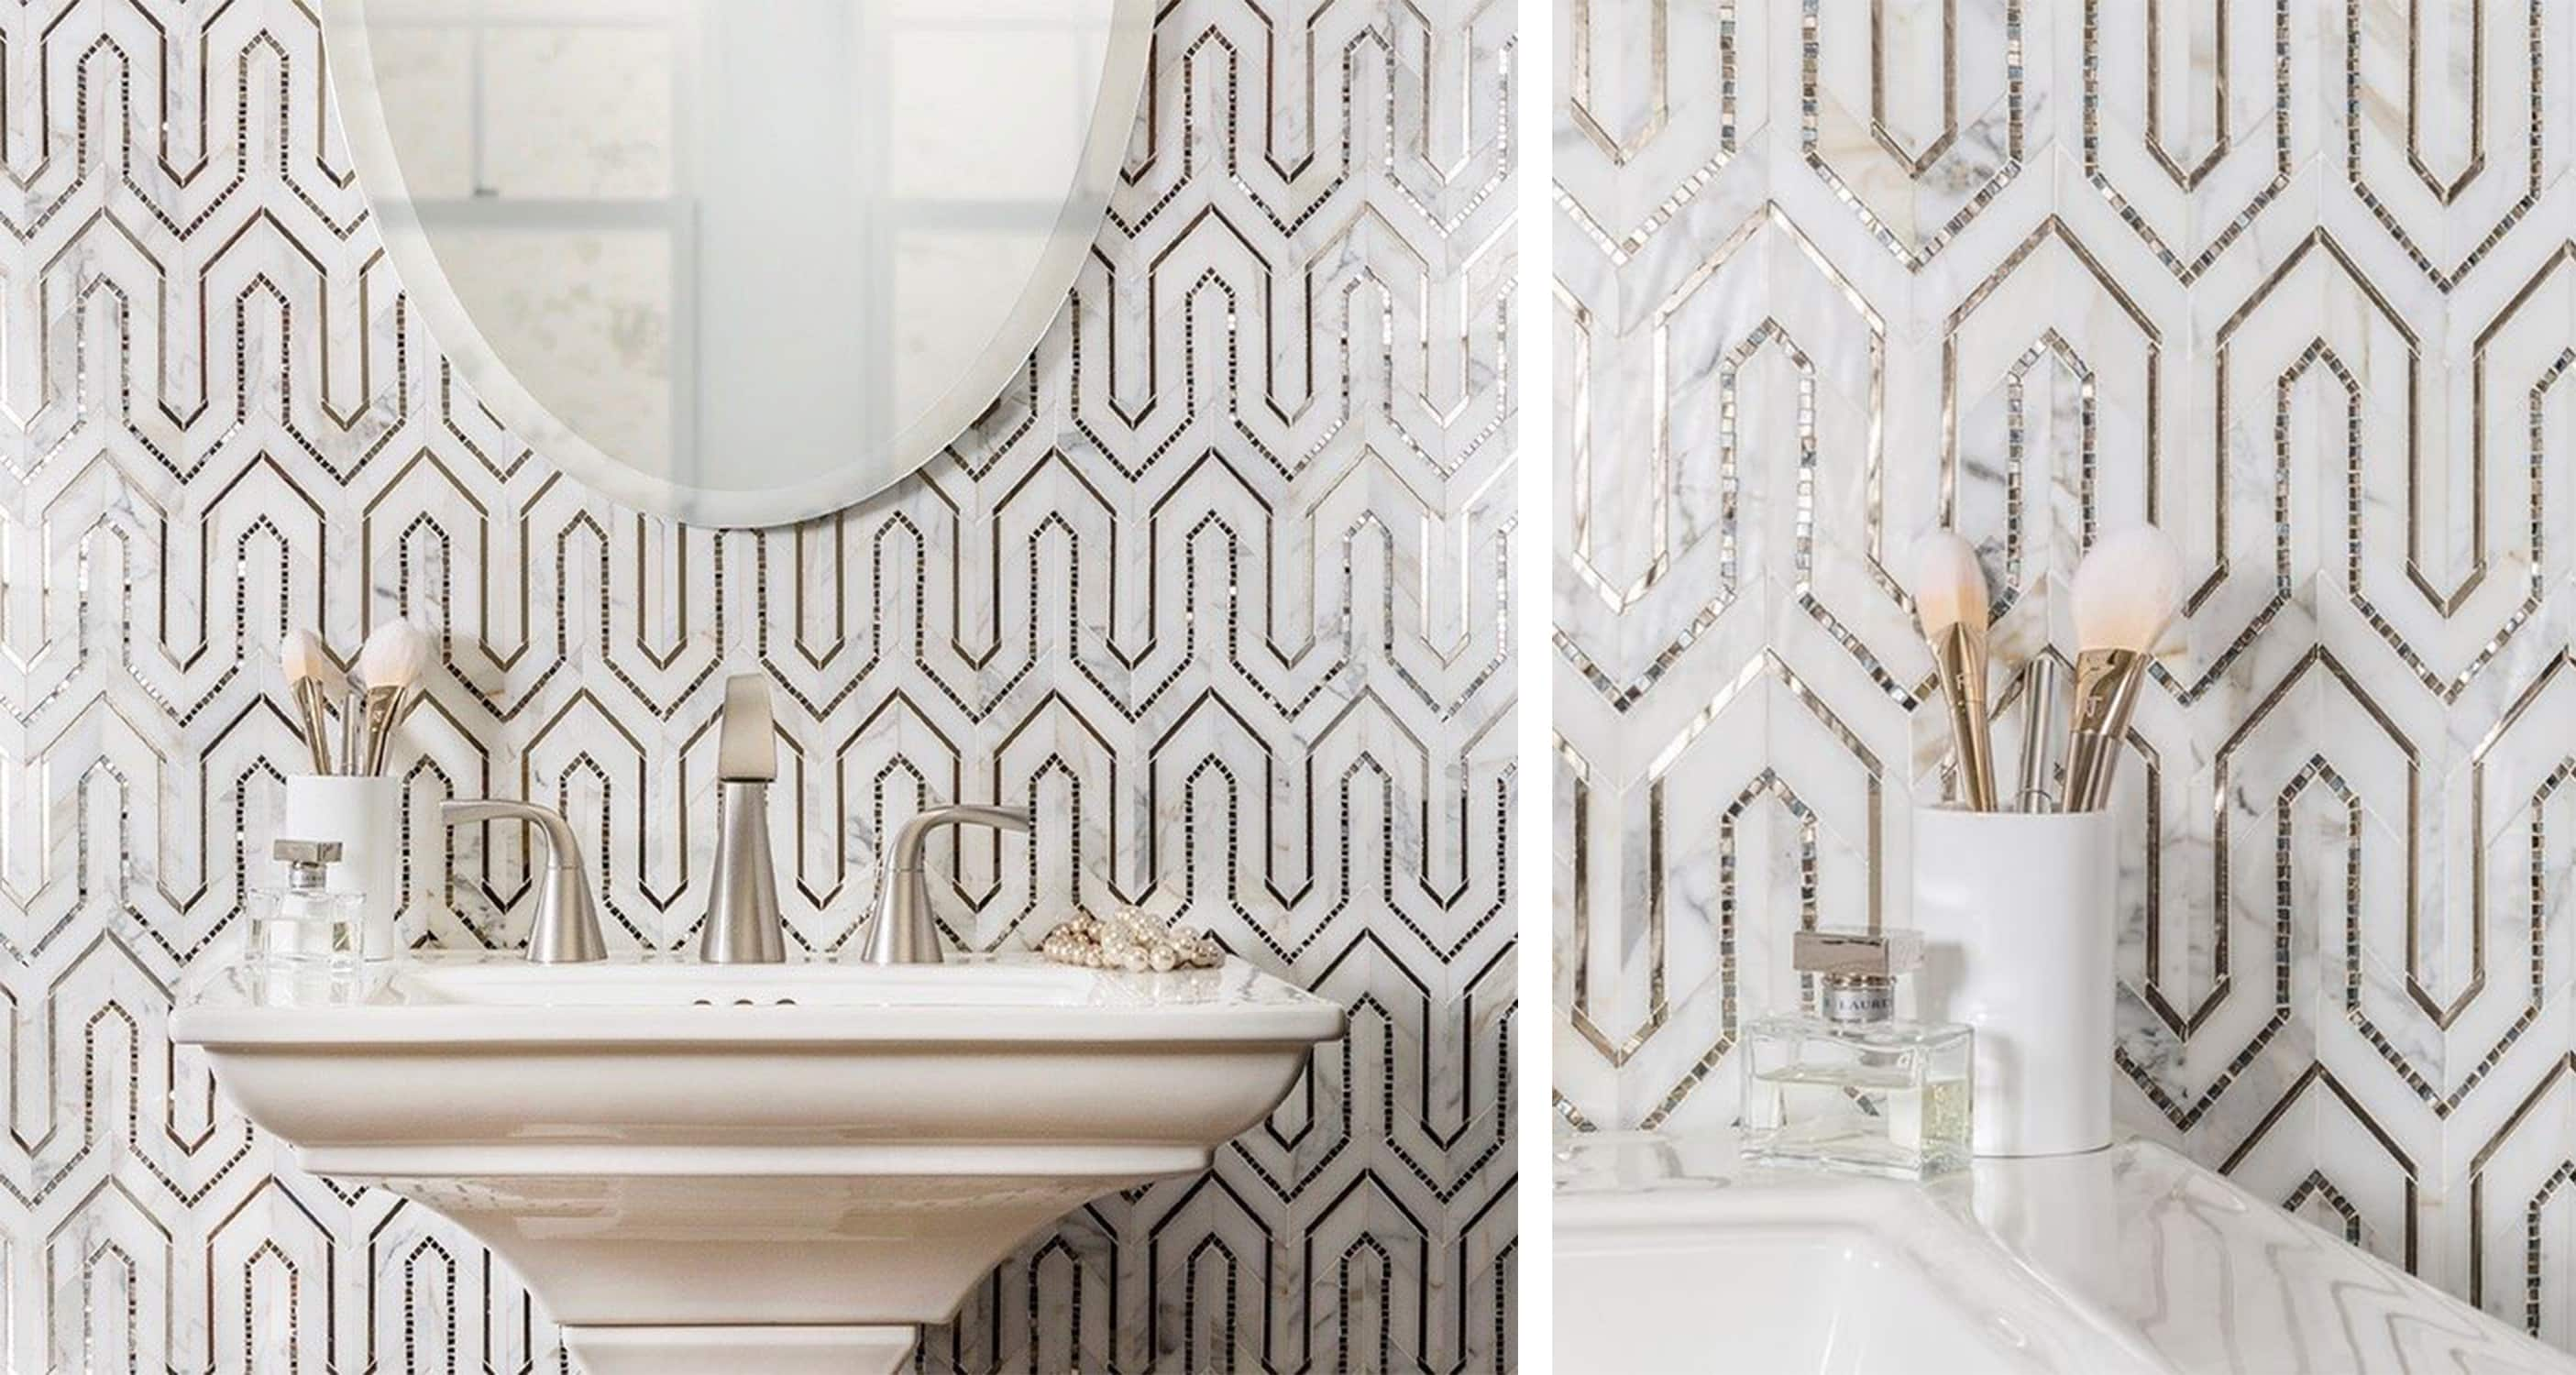 akdo mosaic tile with a metallic inlay - darci hether new york - tile trends